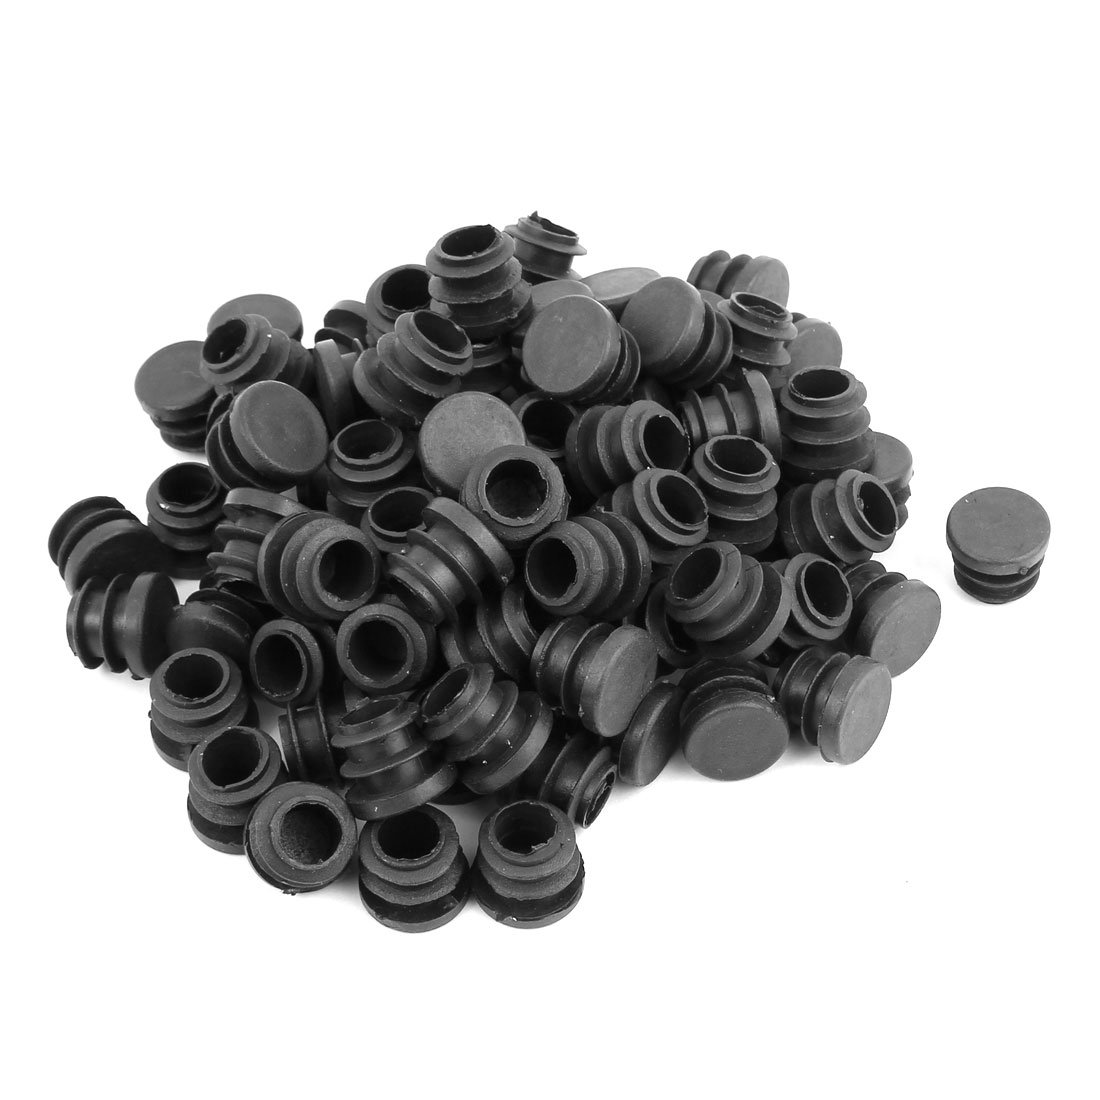 Round Chair Leg Pipe Tube Insert Blanking Cover Black 16mm Dia 100pcs